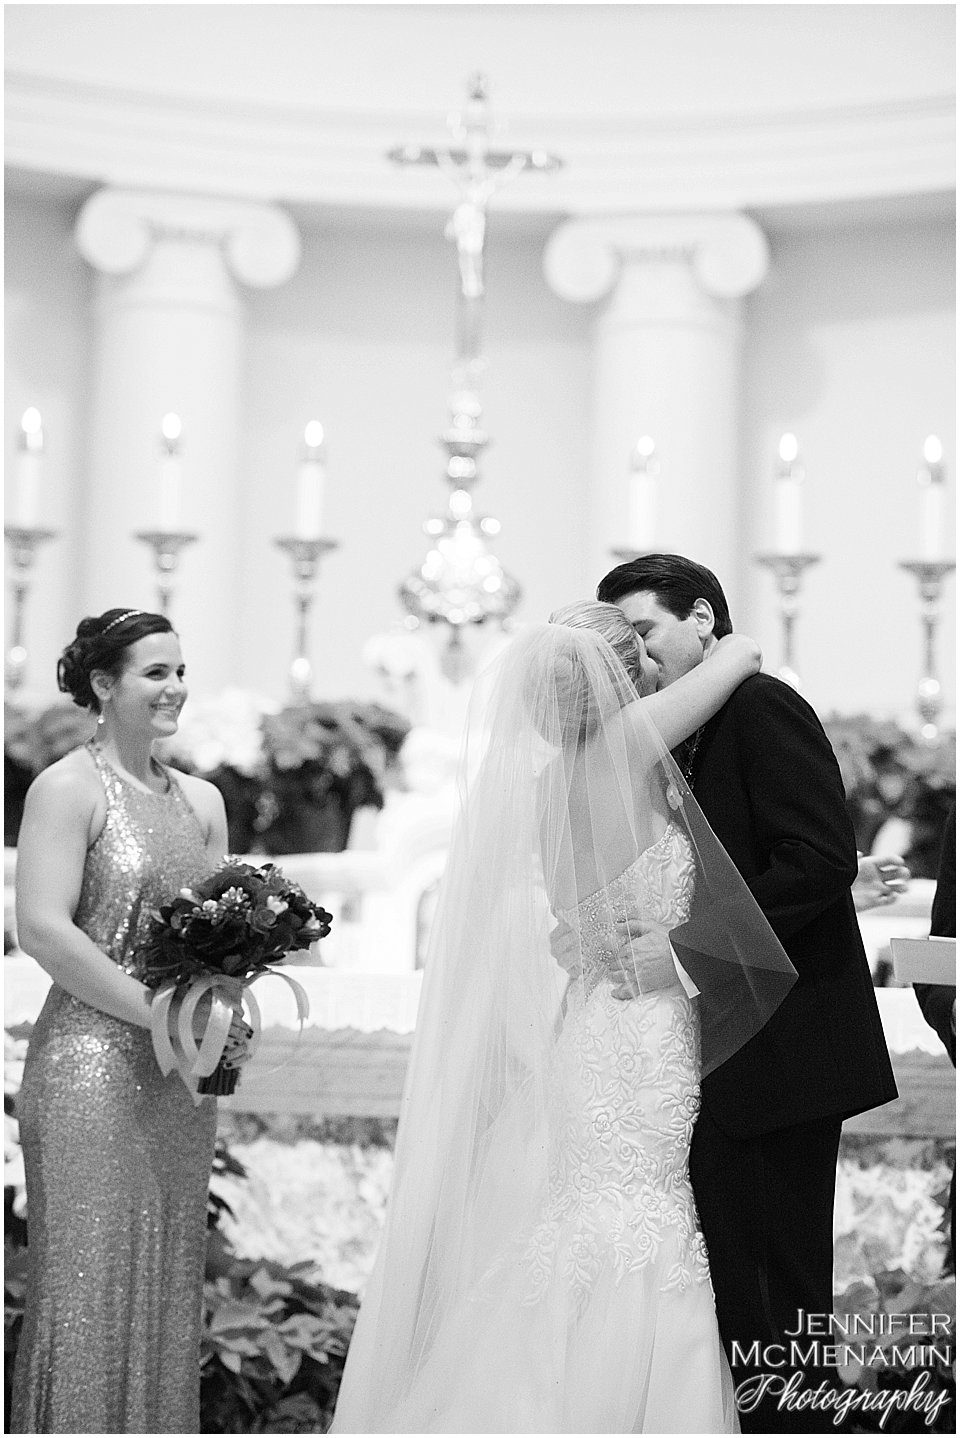 012-JohnsonBollinger_01572bw_Jennifer-McMenamin-Photography-Royal-Sonesta-Harbor-Court-wedding